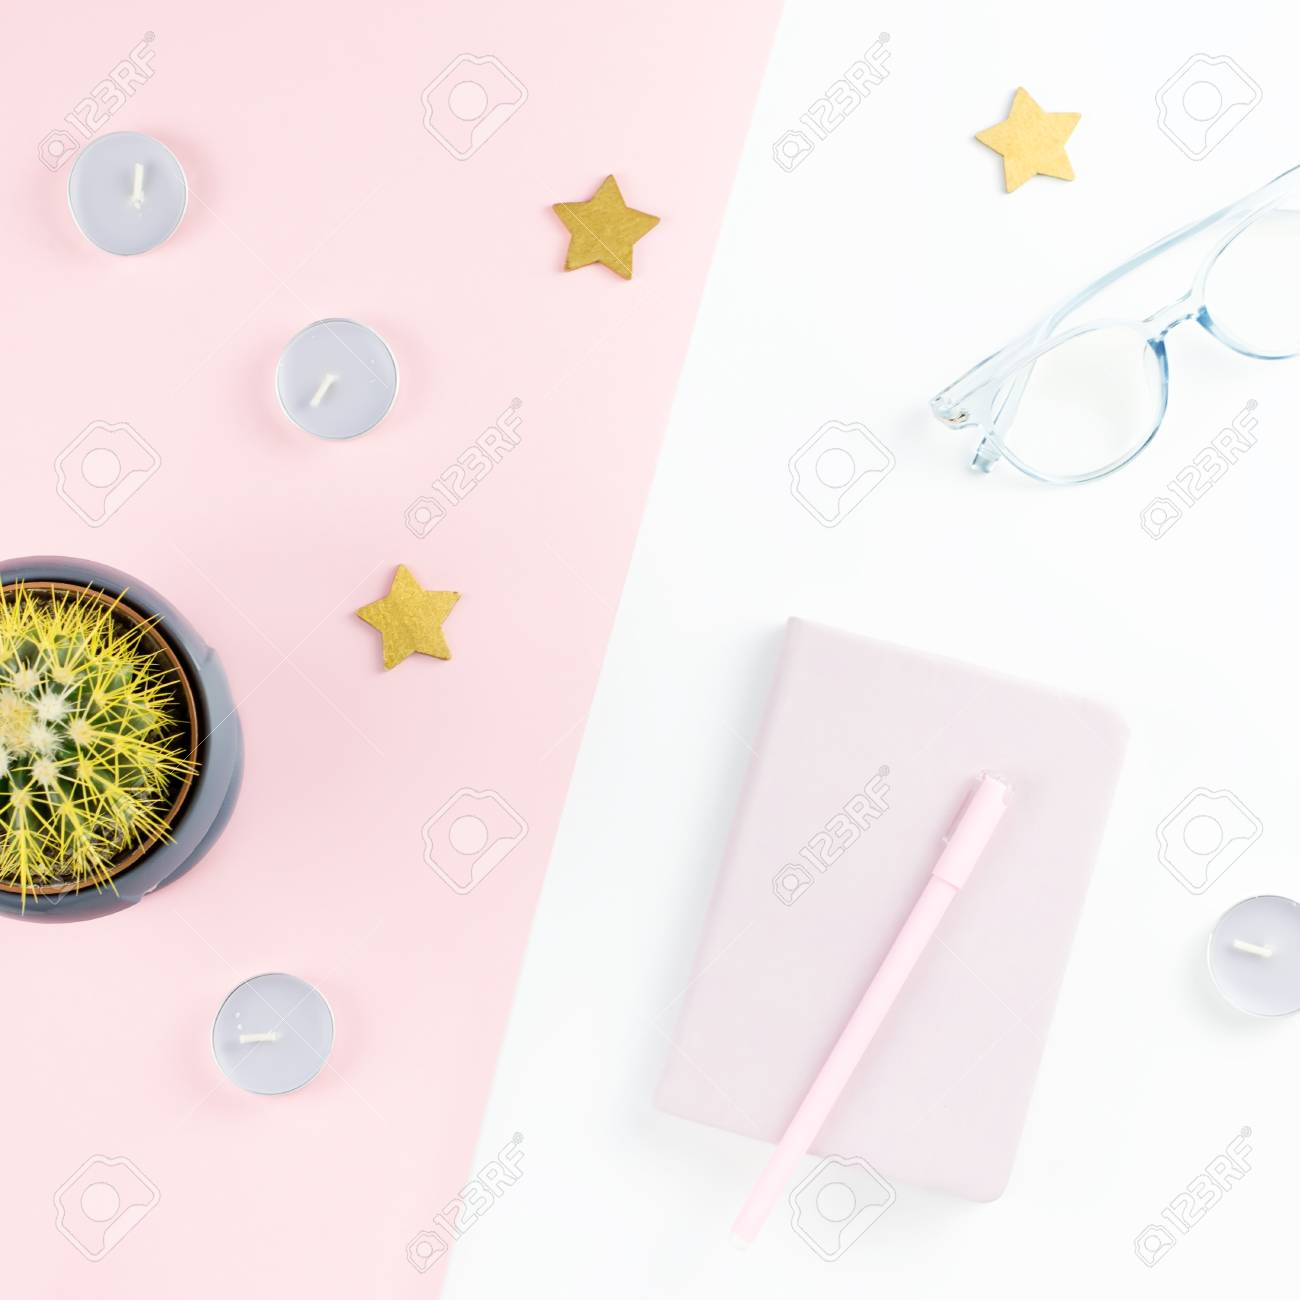 Home Office Planner Wedding Planner Flat Lay Home Office Desk Female Workspace With Planner Eyeglasses Candles Copy 123rfcom Flat Lay Home Office Desk Female Workspace With Planner Eyeglasses